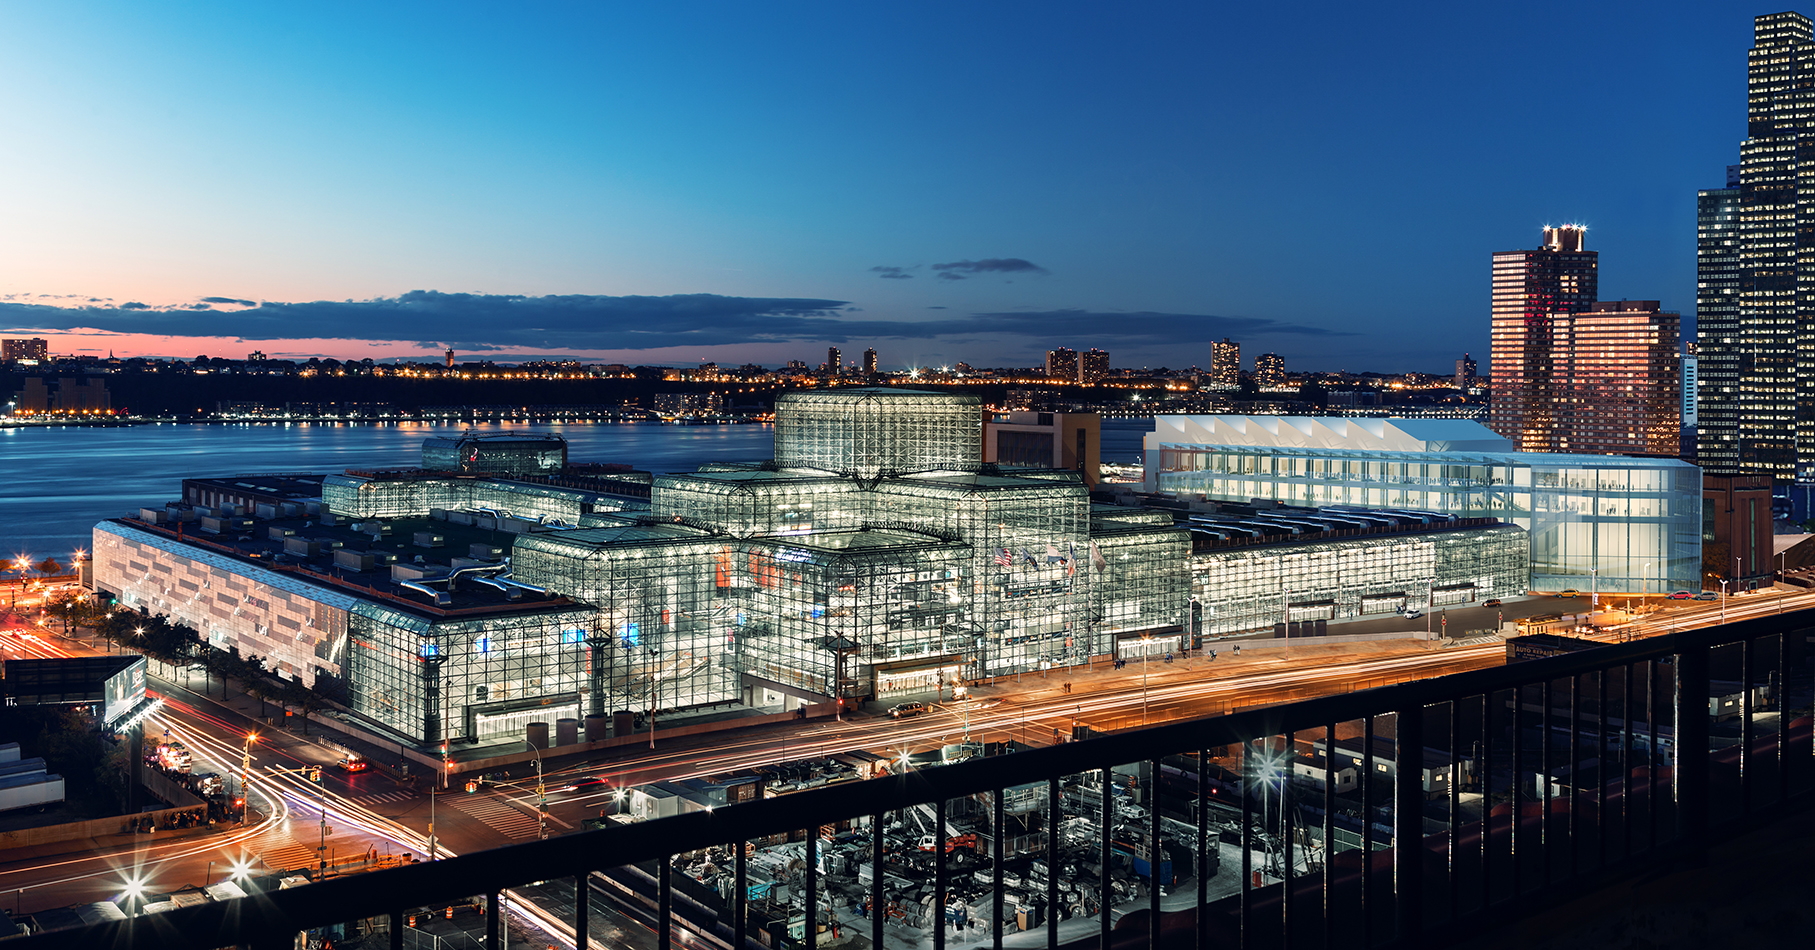 Jacob-K.-Javits-Convention-Center-Expans